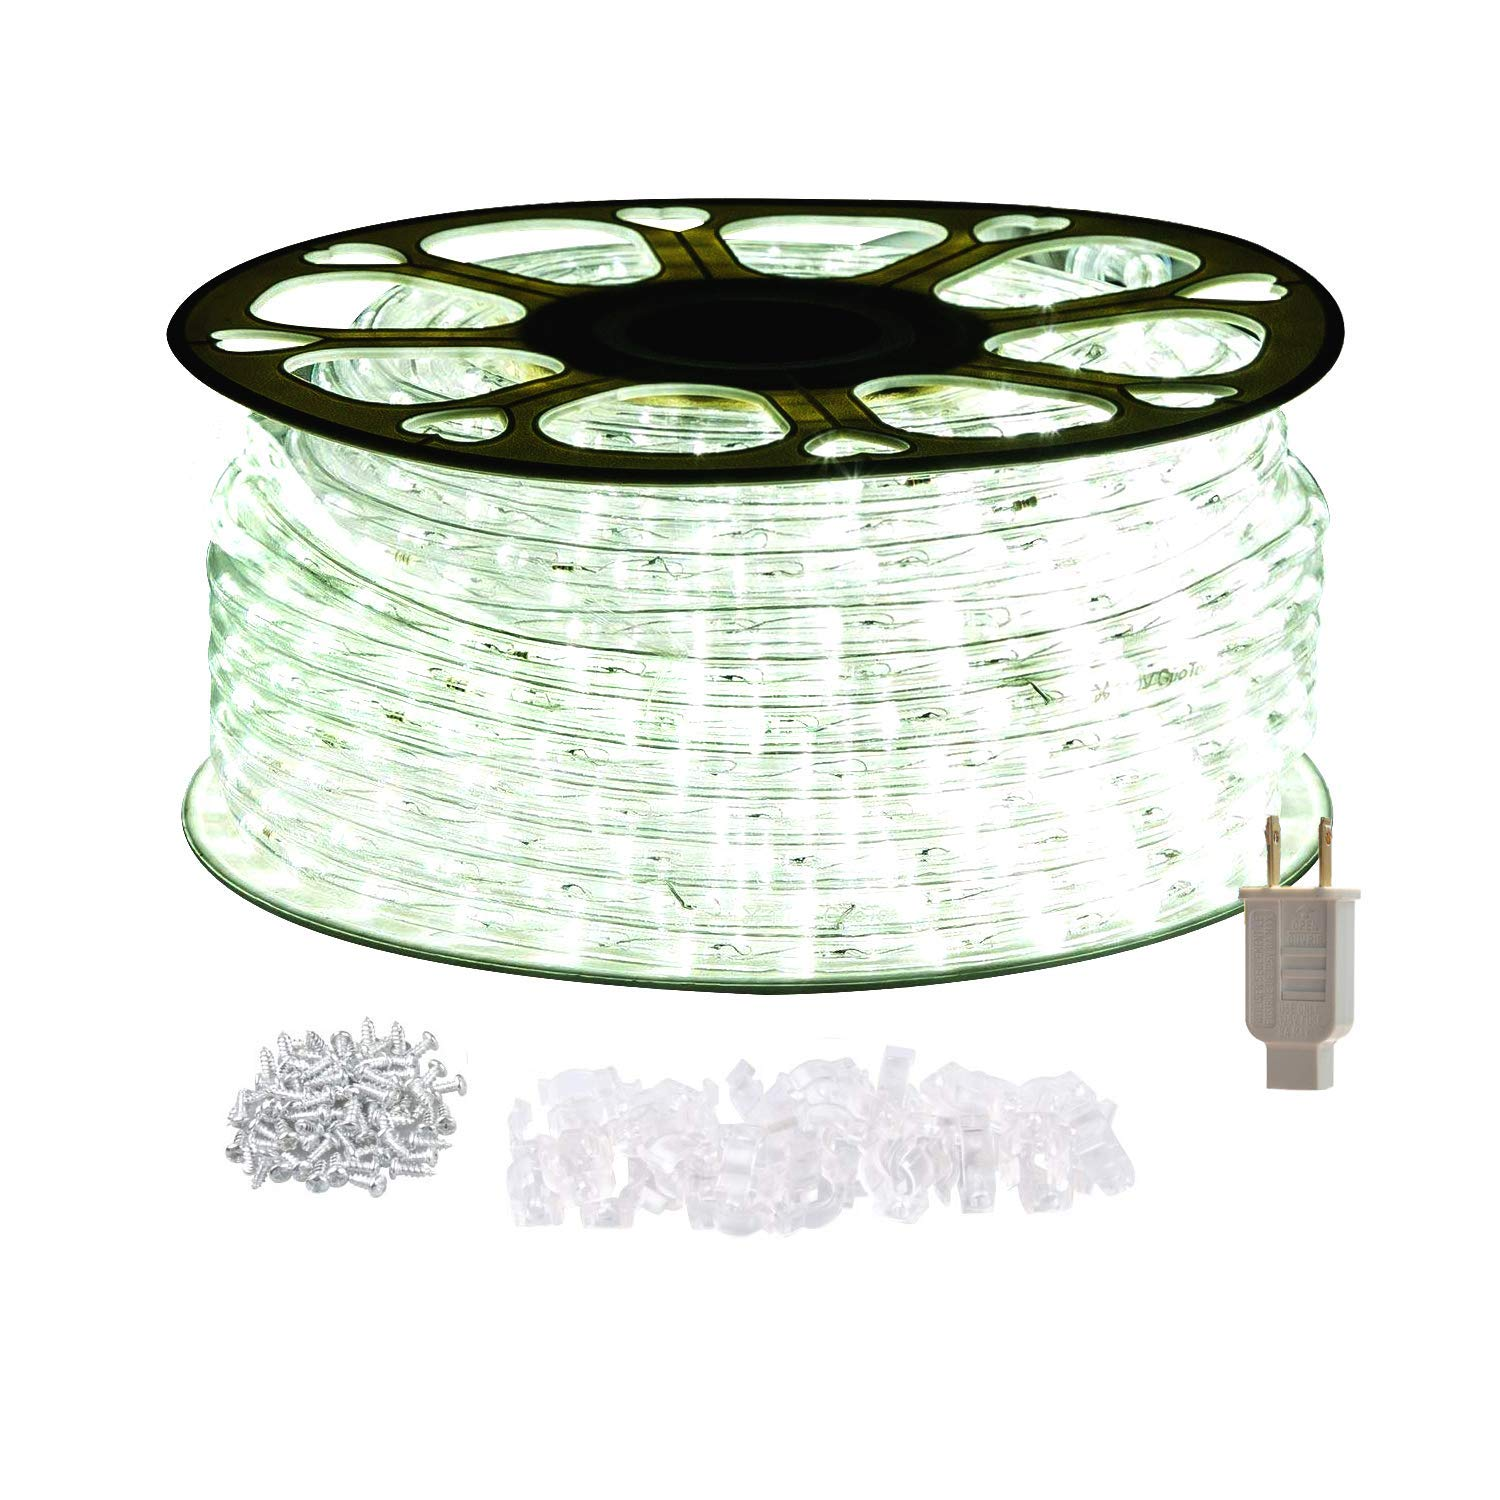 STARSHINE 120V LED Rope Lights,Connectable Waterproof LED String Lights Kit for Patio, Backyard, Garden, Wedding, Christmas Party, Indoor and Outdoor Decorations, UL Listed (100FT/30M, White)